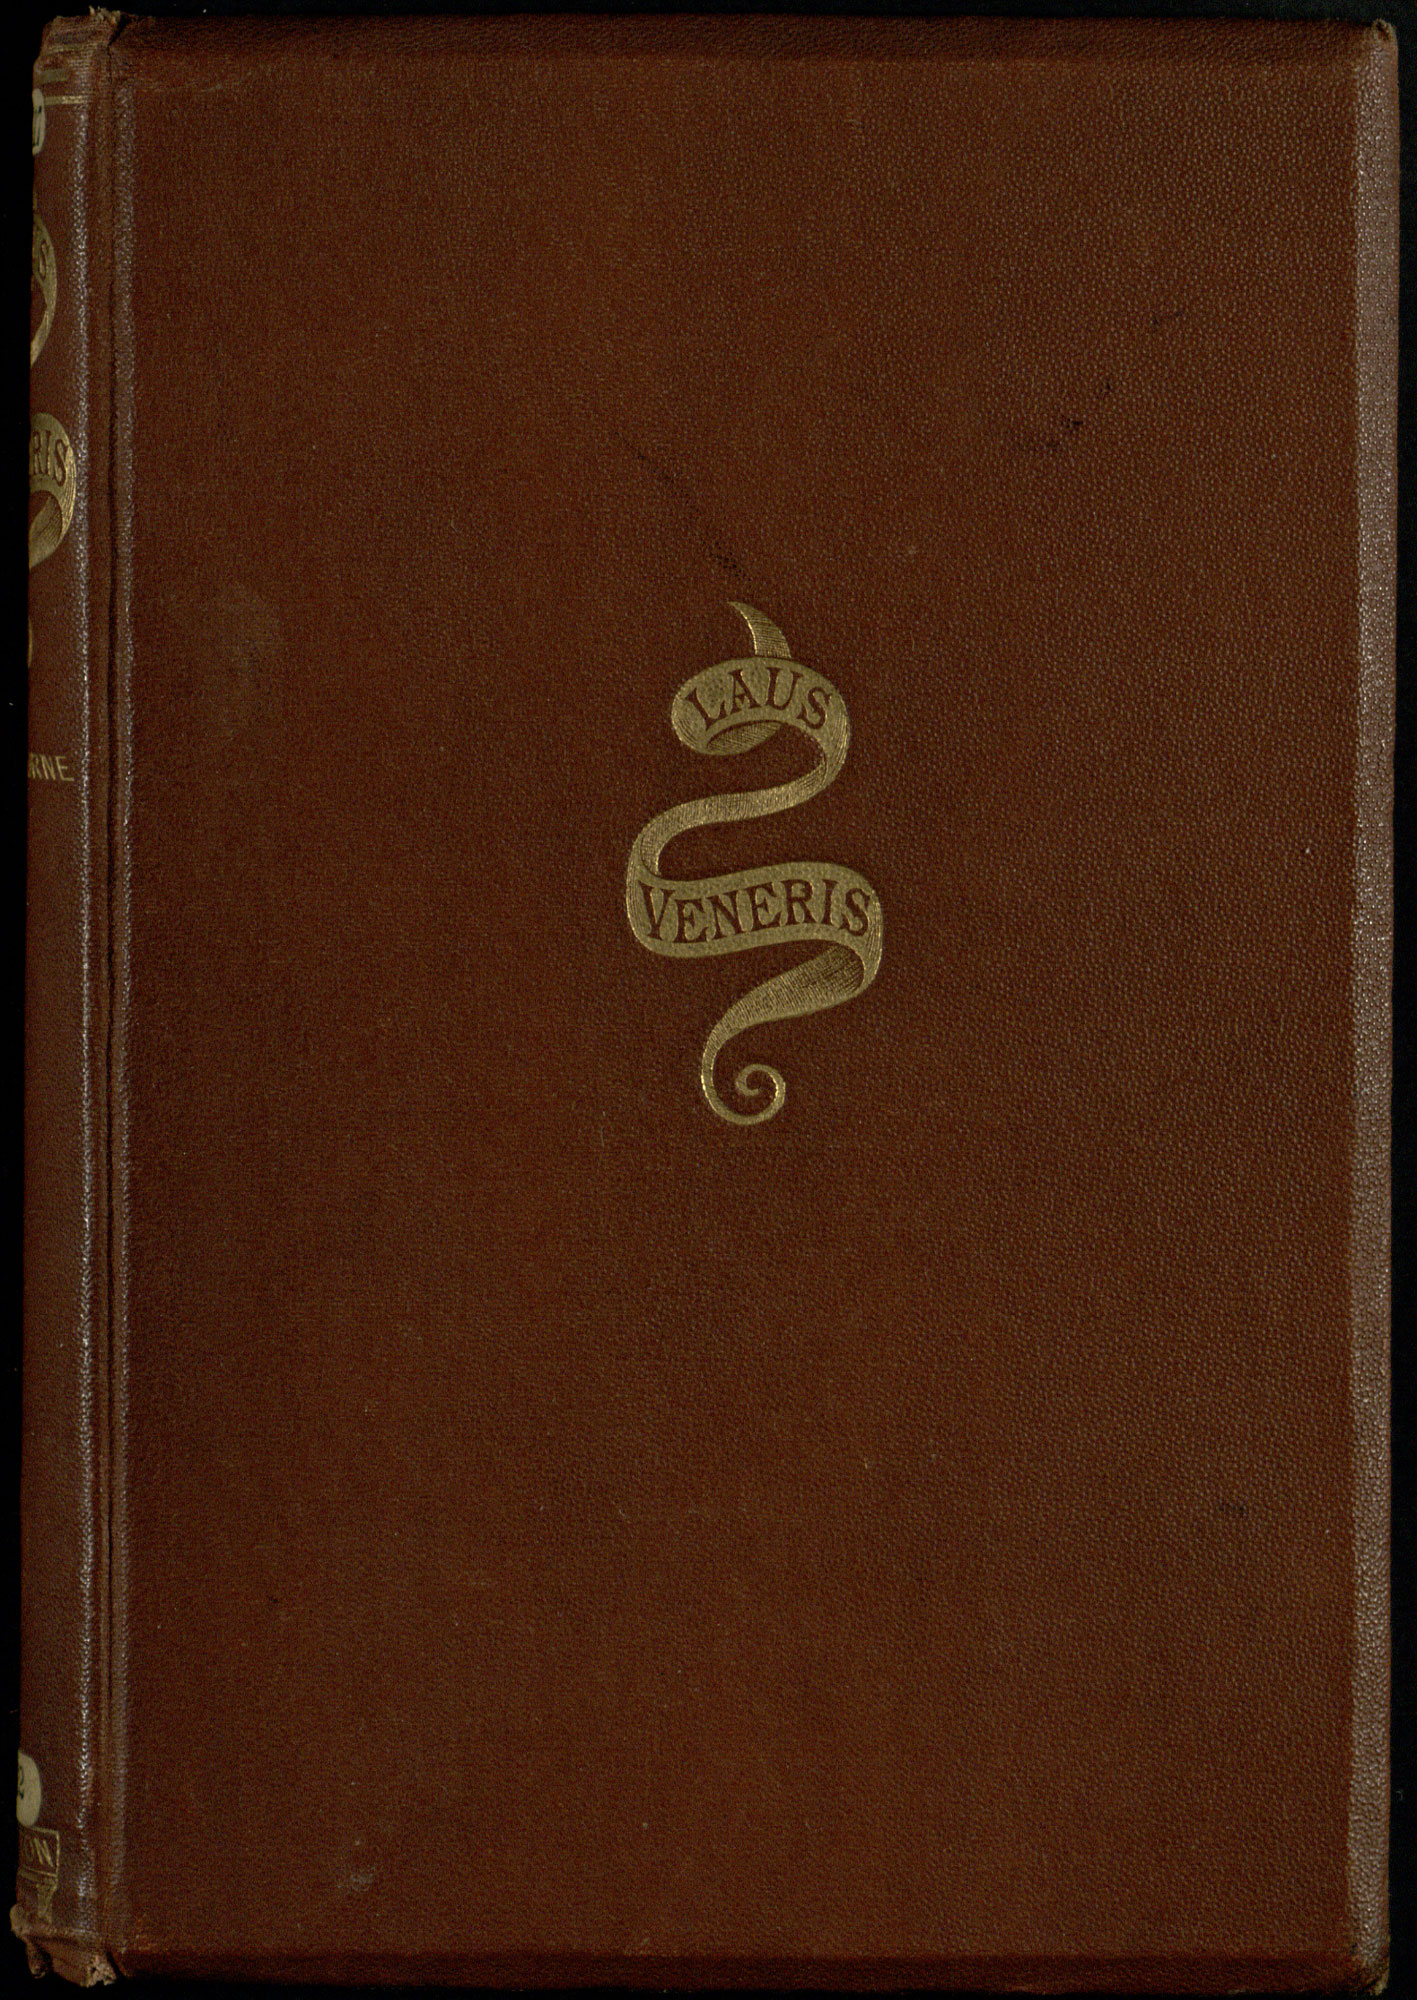 Swinburne's Poems and Ballads